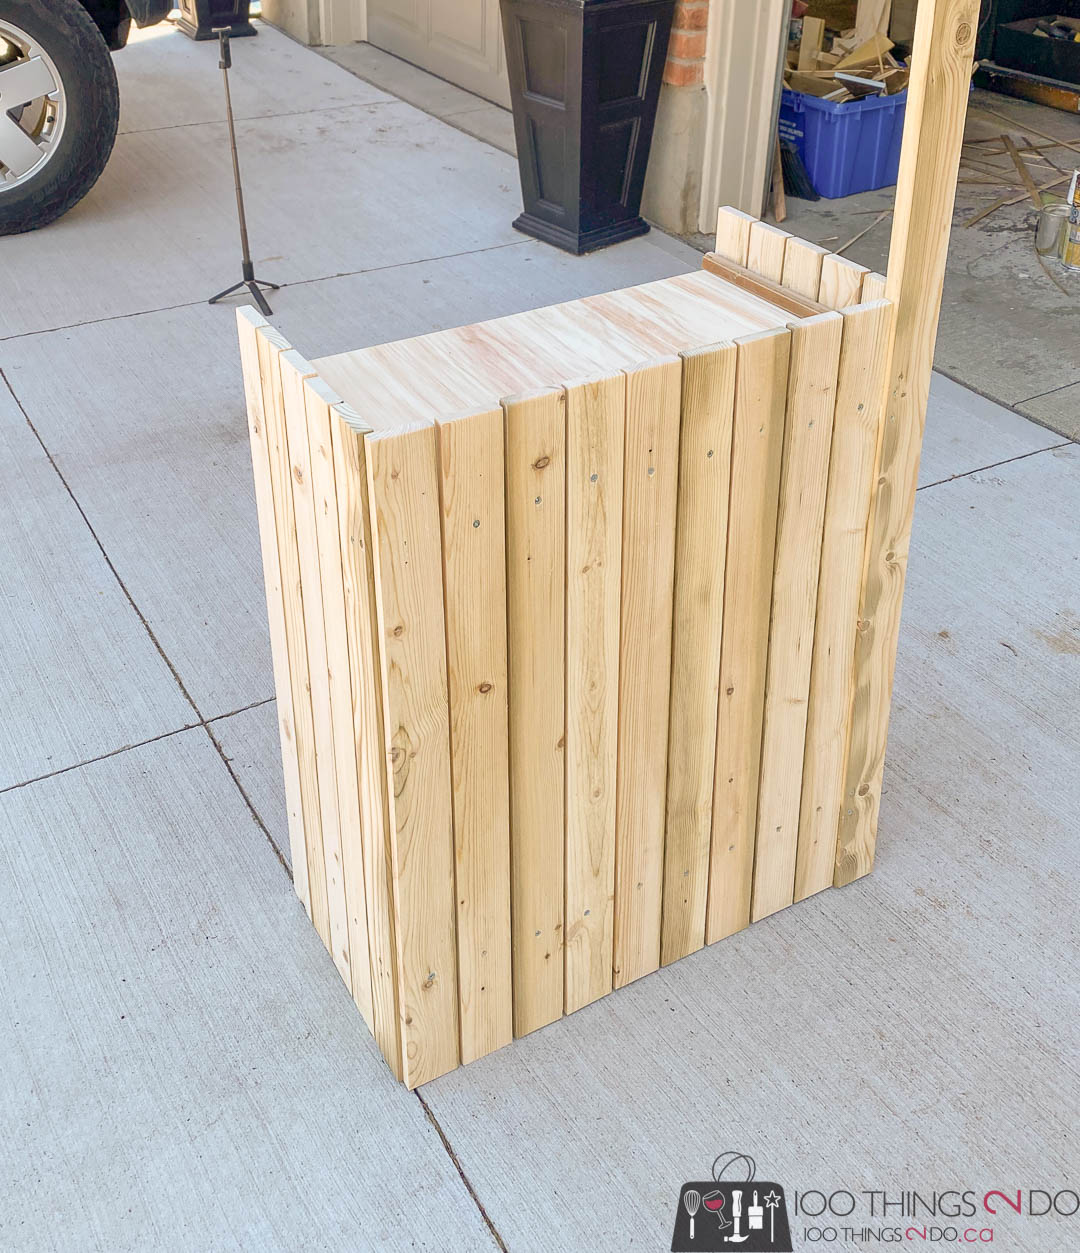 DIY lemonade stand, folding lemonade stand, collapsible lemonade stand